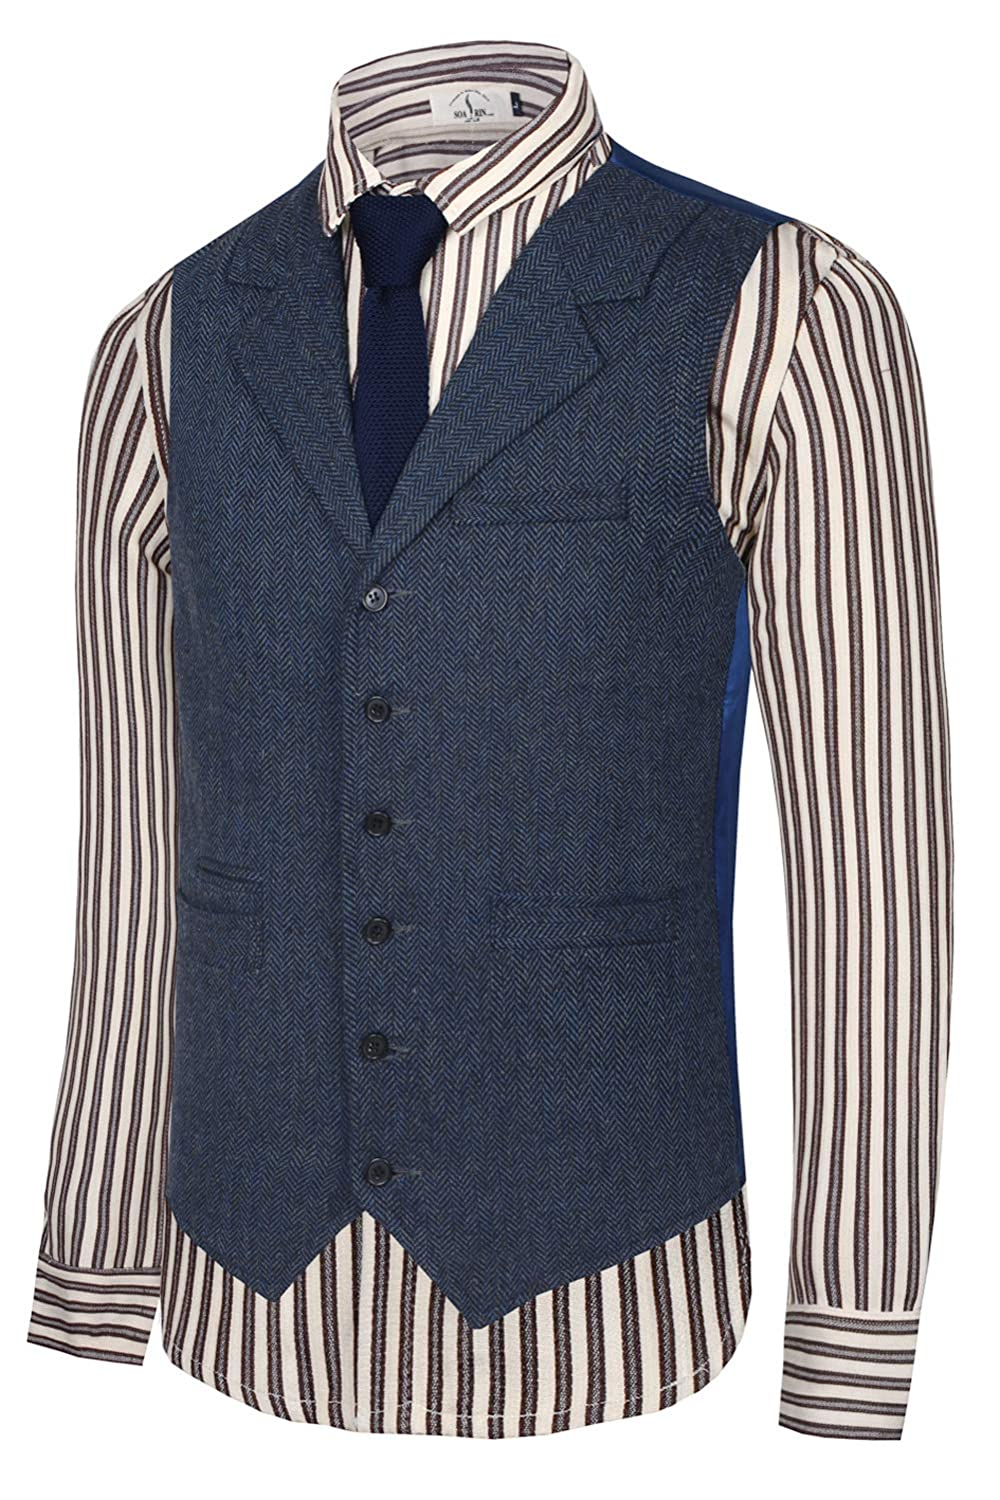 1920s Style Mens Vests Hanayome Mens Gentleman Top Design Casual Waistcoat Business Suit Vest VS17 $59.90 AT vintagedancer.com